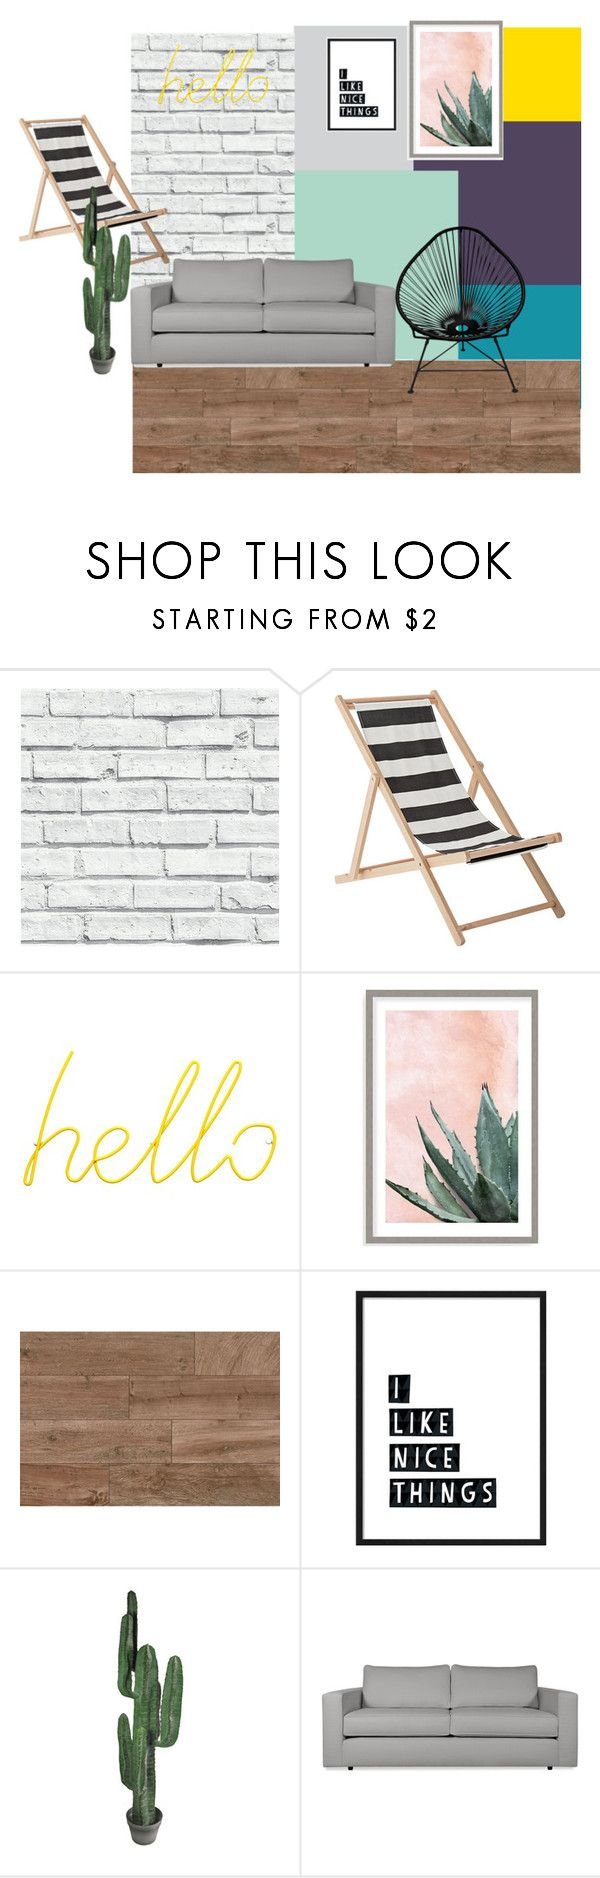 """mnvl"" by anaunderground on Polyvore featuring interior, interiors, interior design, casa, home decor, interior decorating, Bloomingville, Block, Art Addiction e Abigail Ahern"